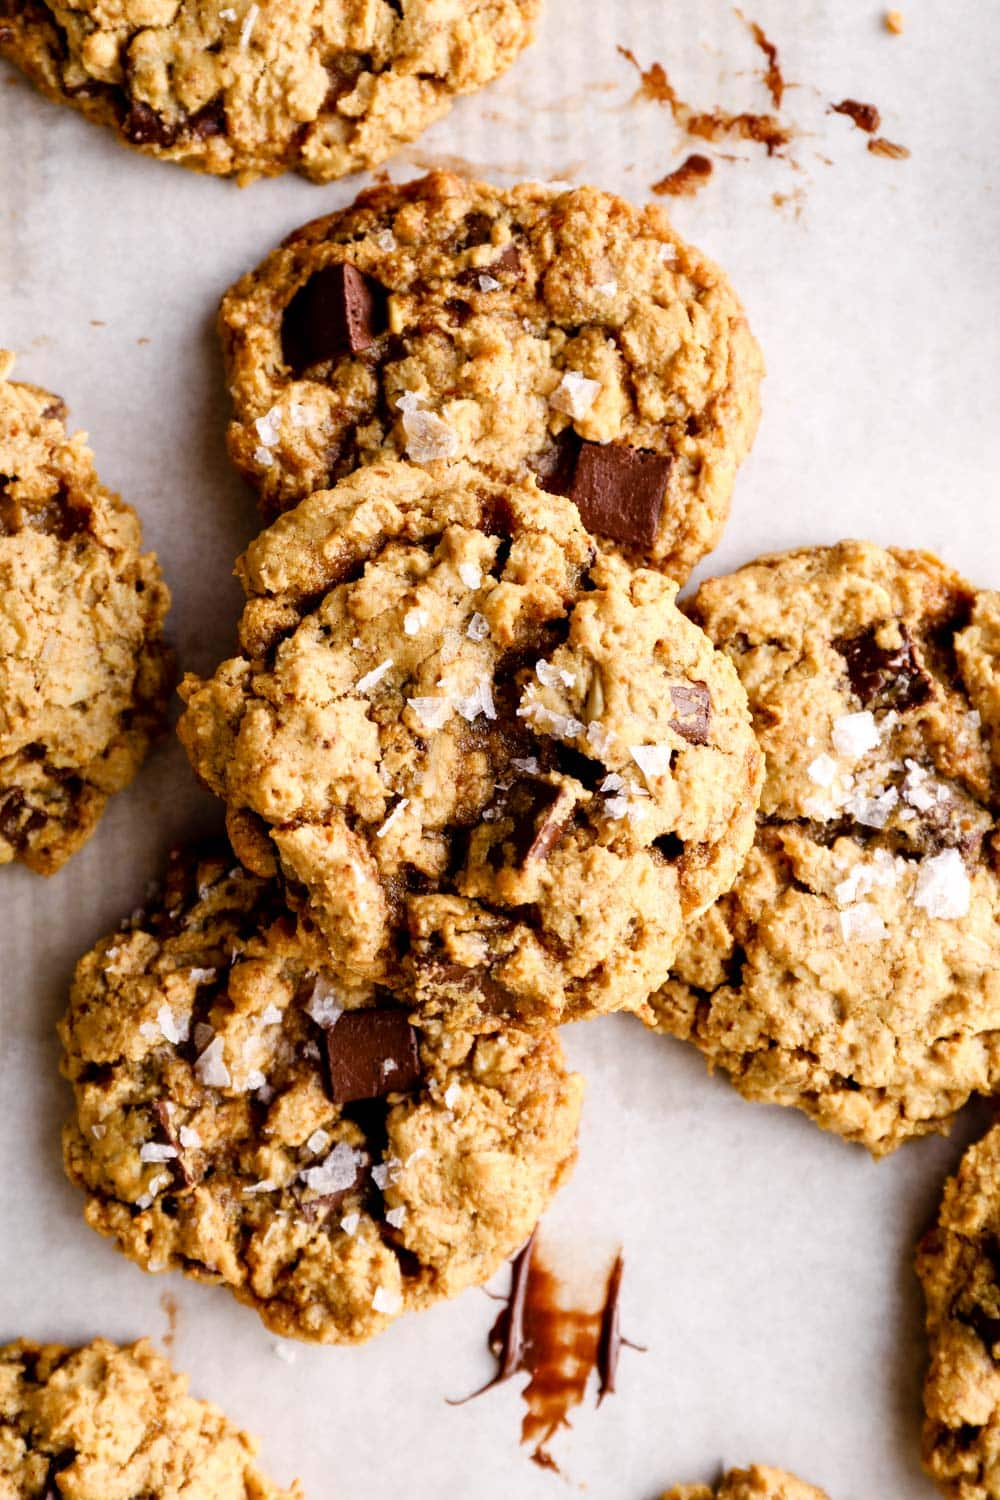 A stack of gluten free oatmeal cookies.